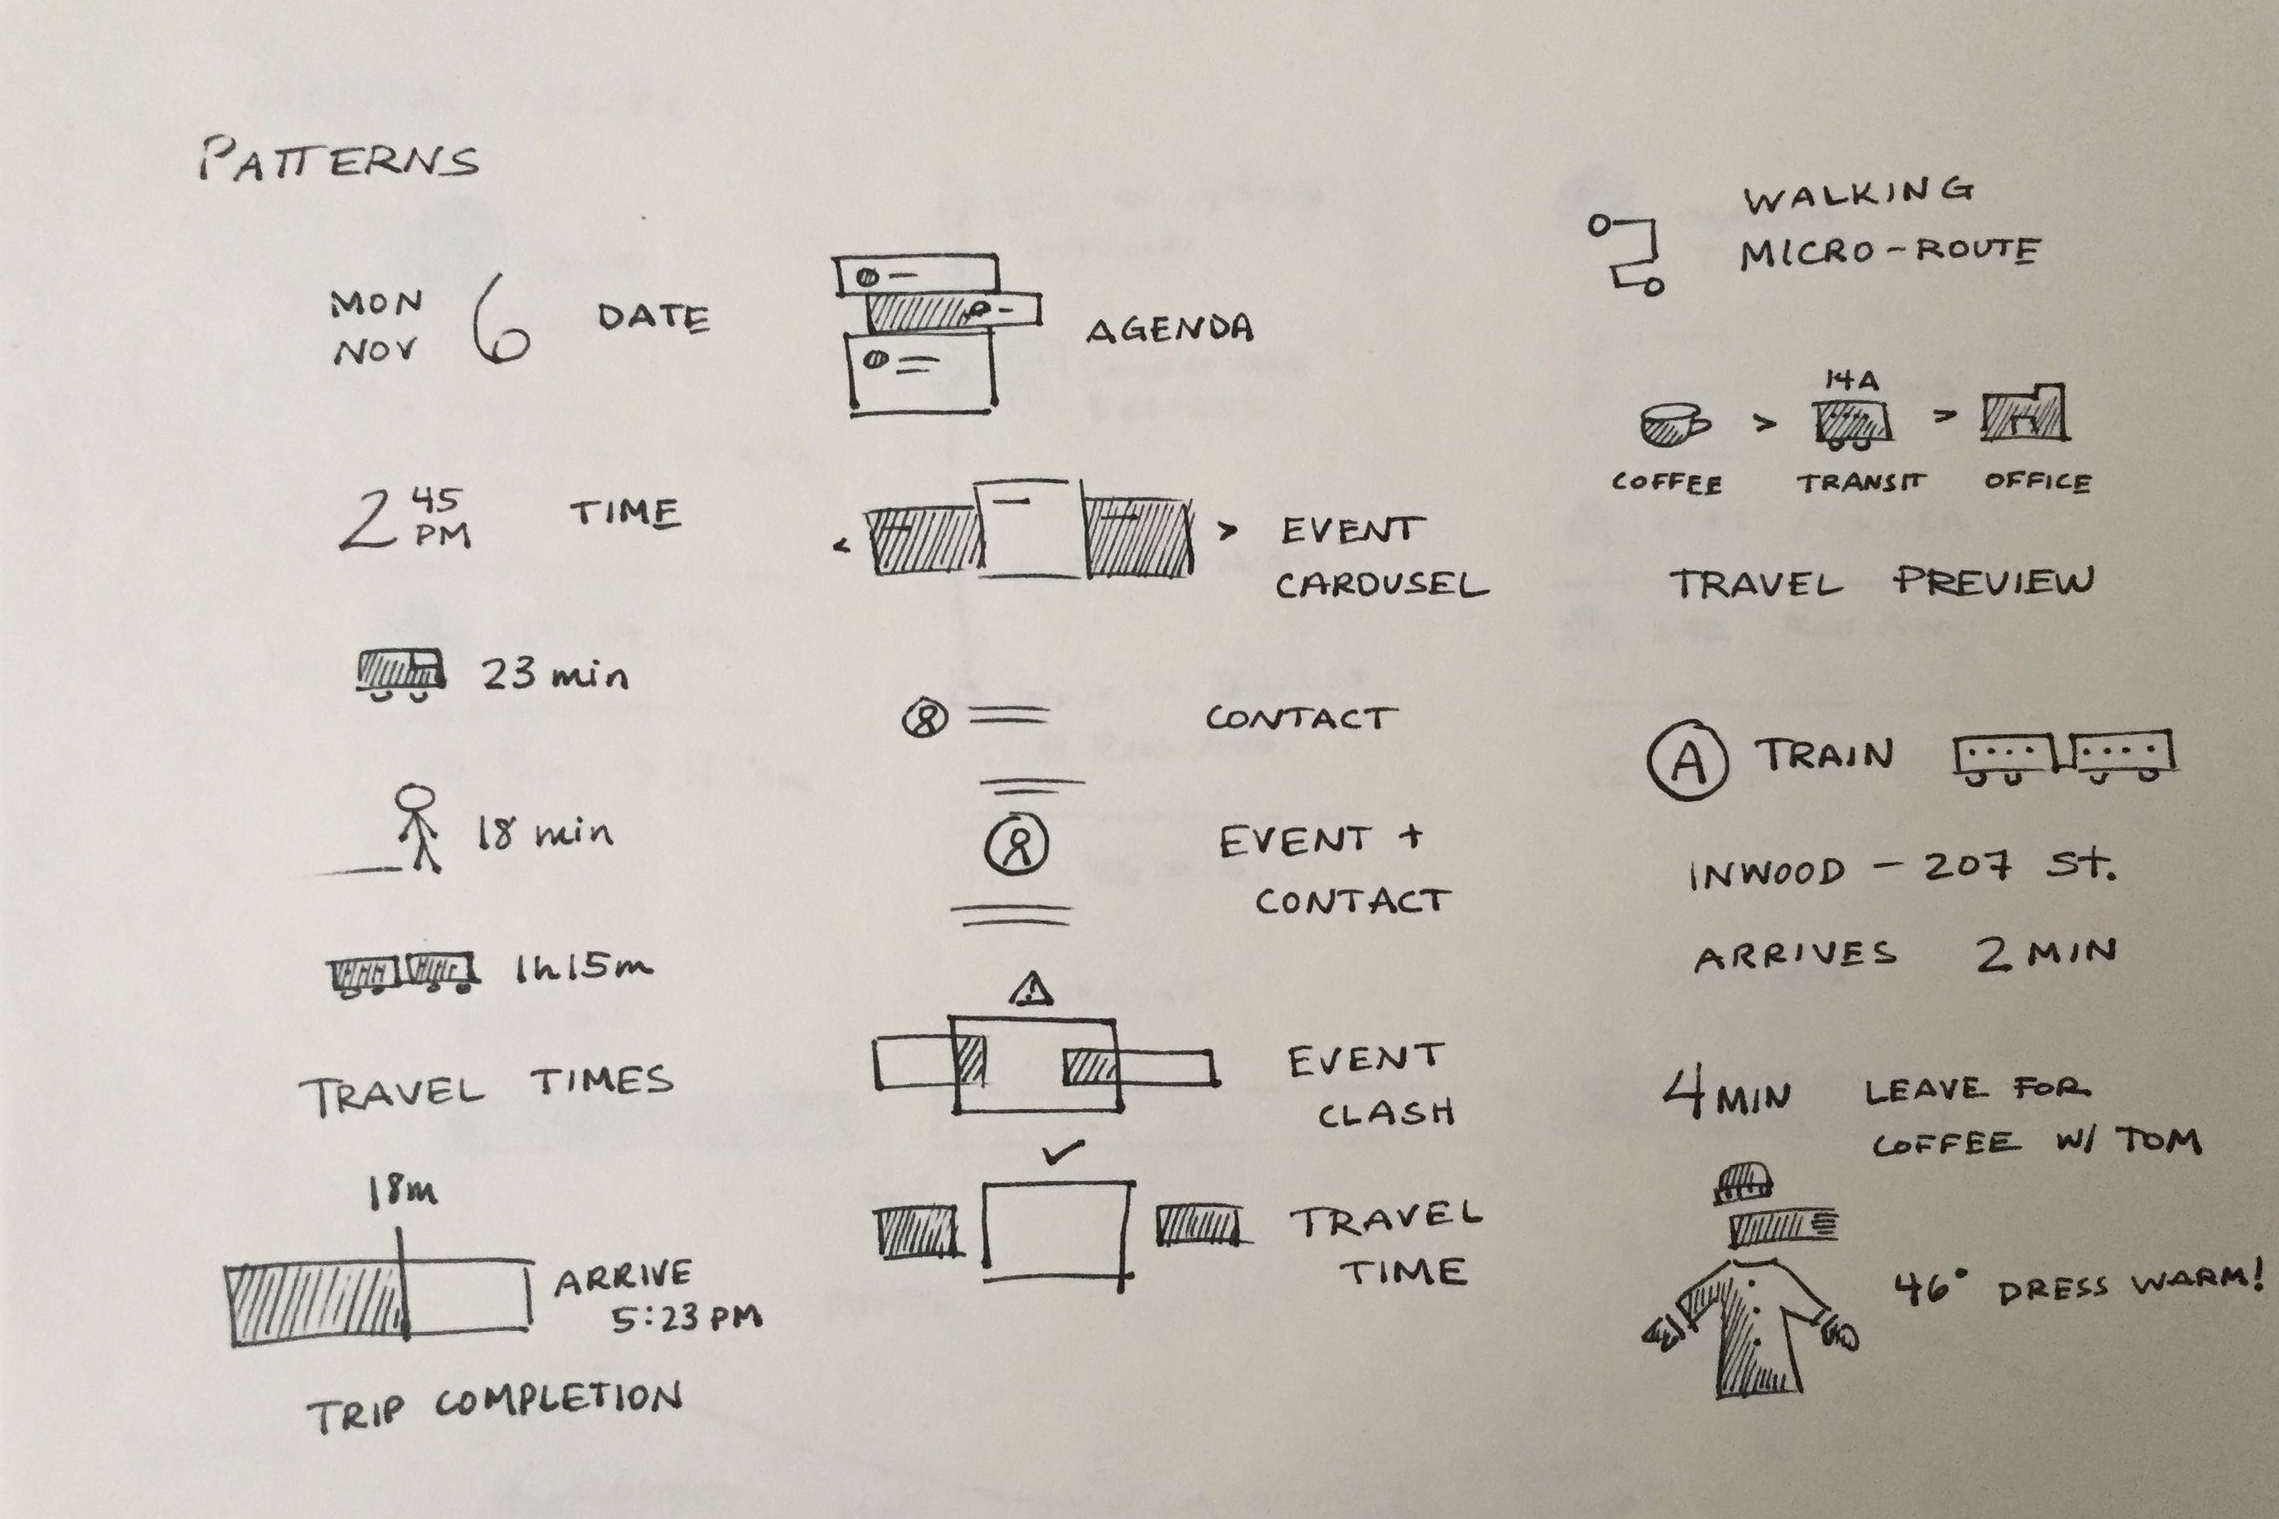 Design patterns for time and dates, icon and word pairing and illustrations of time.